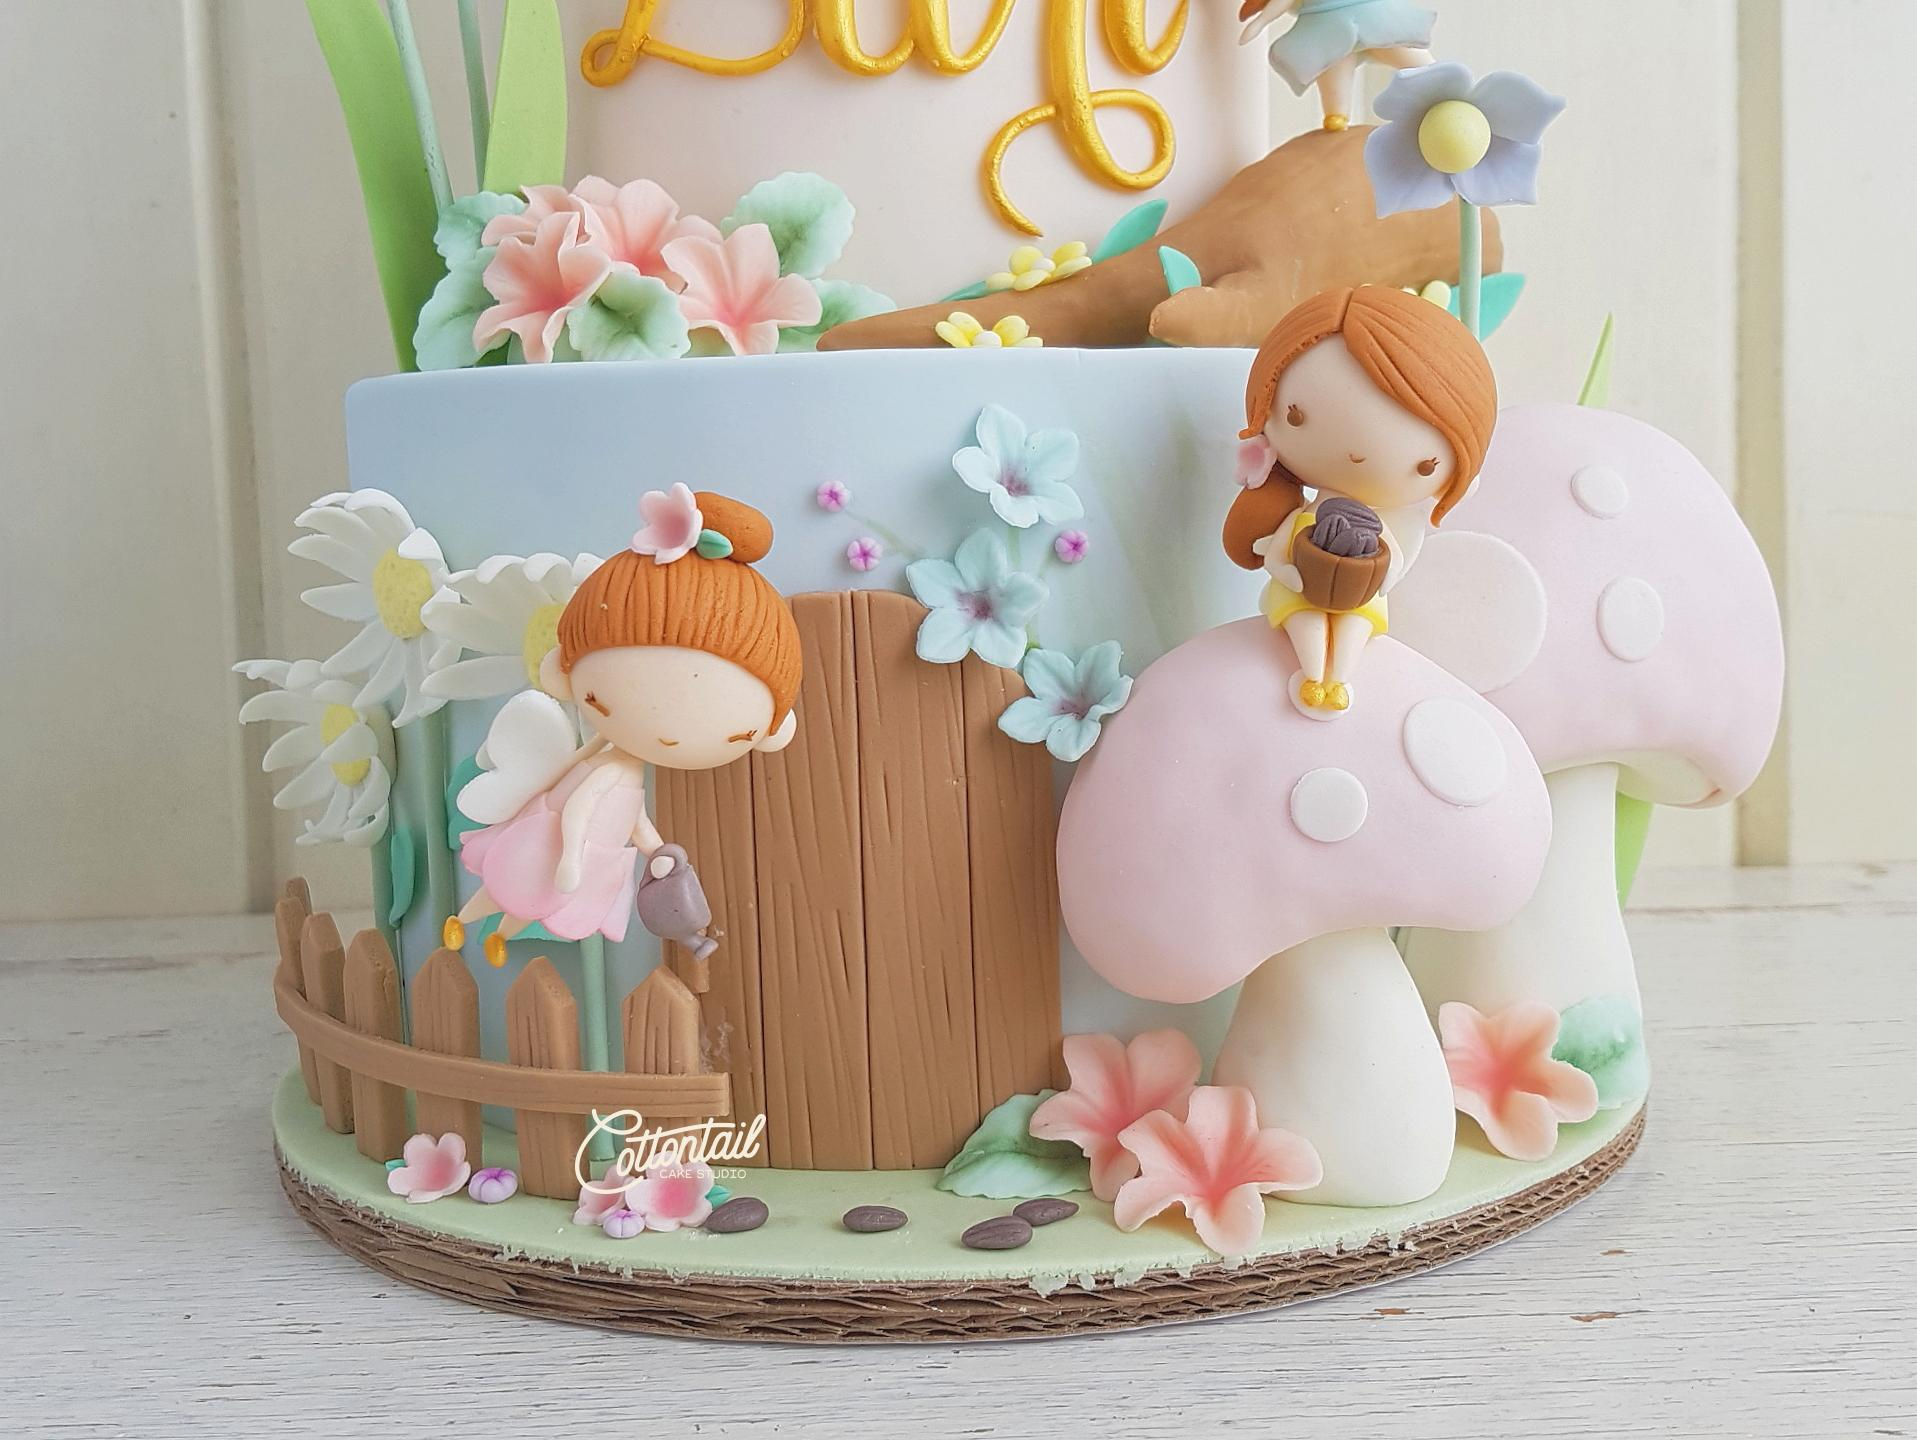 Cake Art Studio Atherstone : We Do Believe in Fairies. We do! We do! Cottontail Cake ...